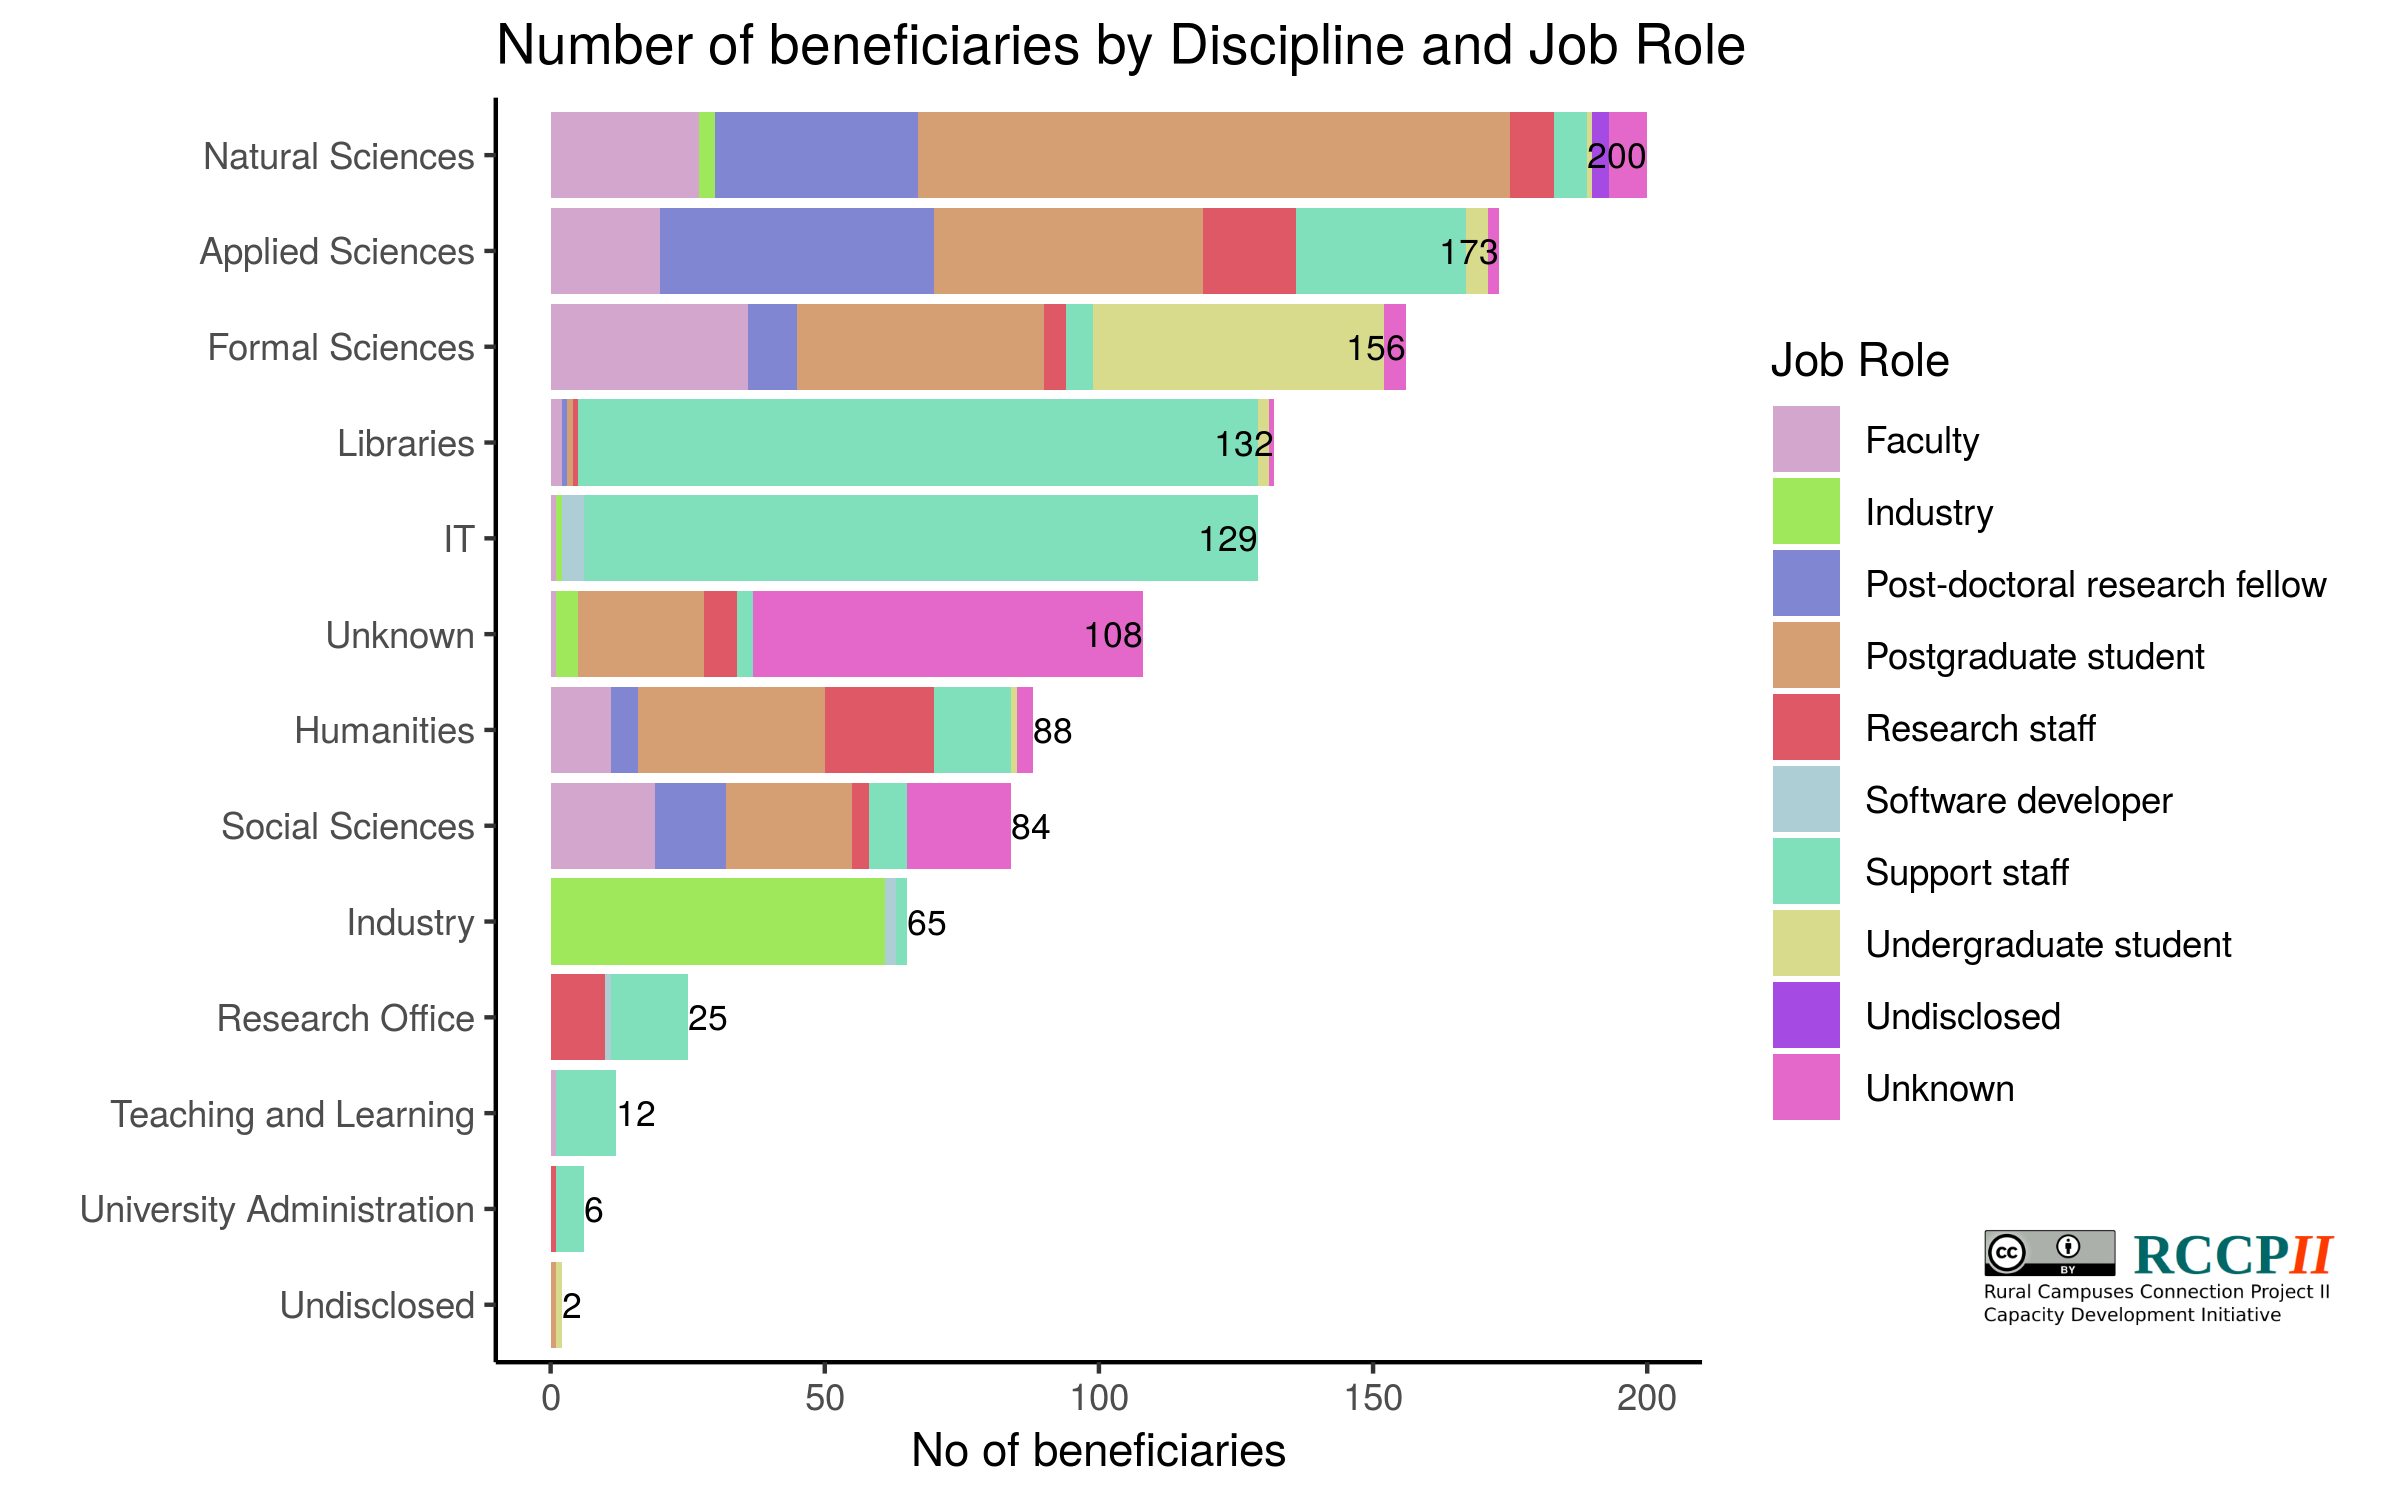 Participant distribution ito discipline and job role